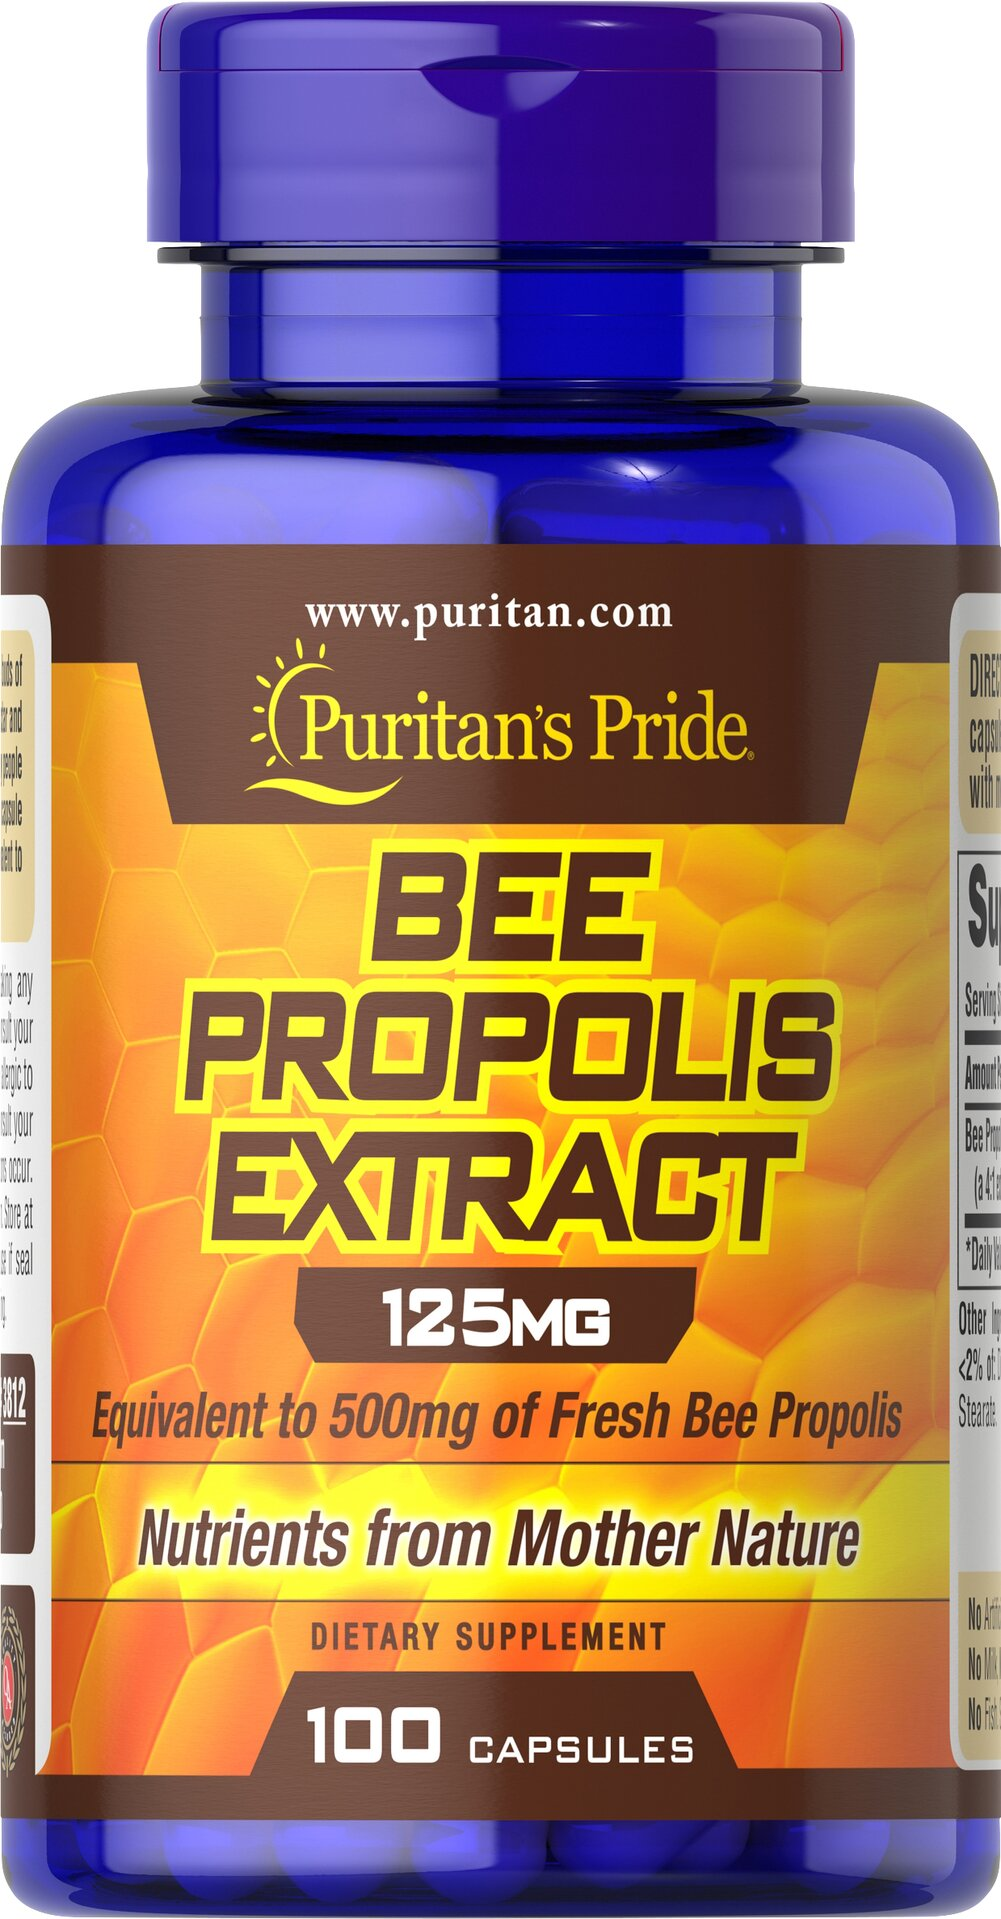 Bee Propolis 500 mg <p>Once again, the amazing Bee has provided us with a beneficial natural food supplement rich in flavonoids, amino acids, vitamins and minerals.  Puritan's Pride offers you high quality natural Bee Propolis at incredible savings.</p> 100 Capsules 500 mg $10.48